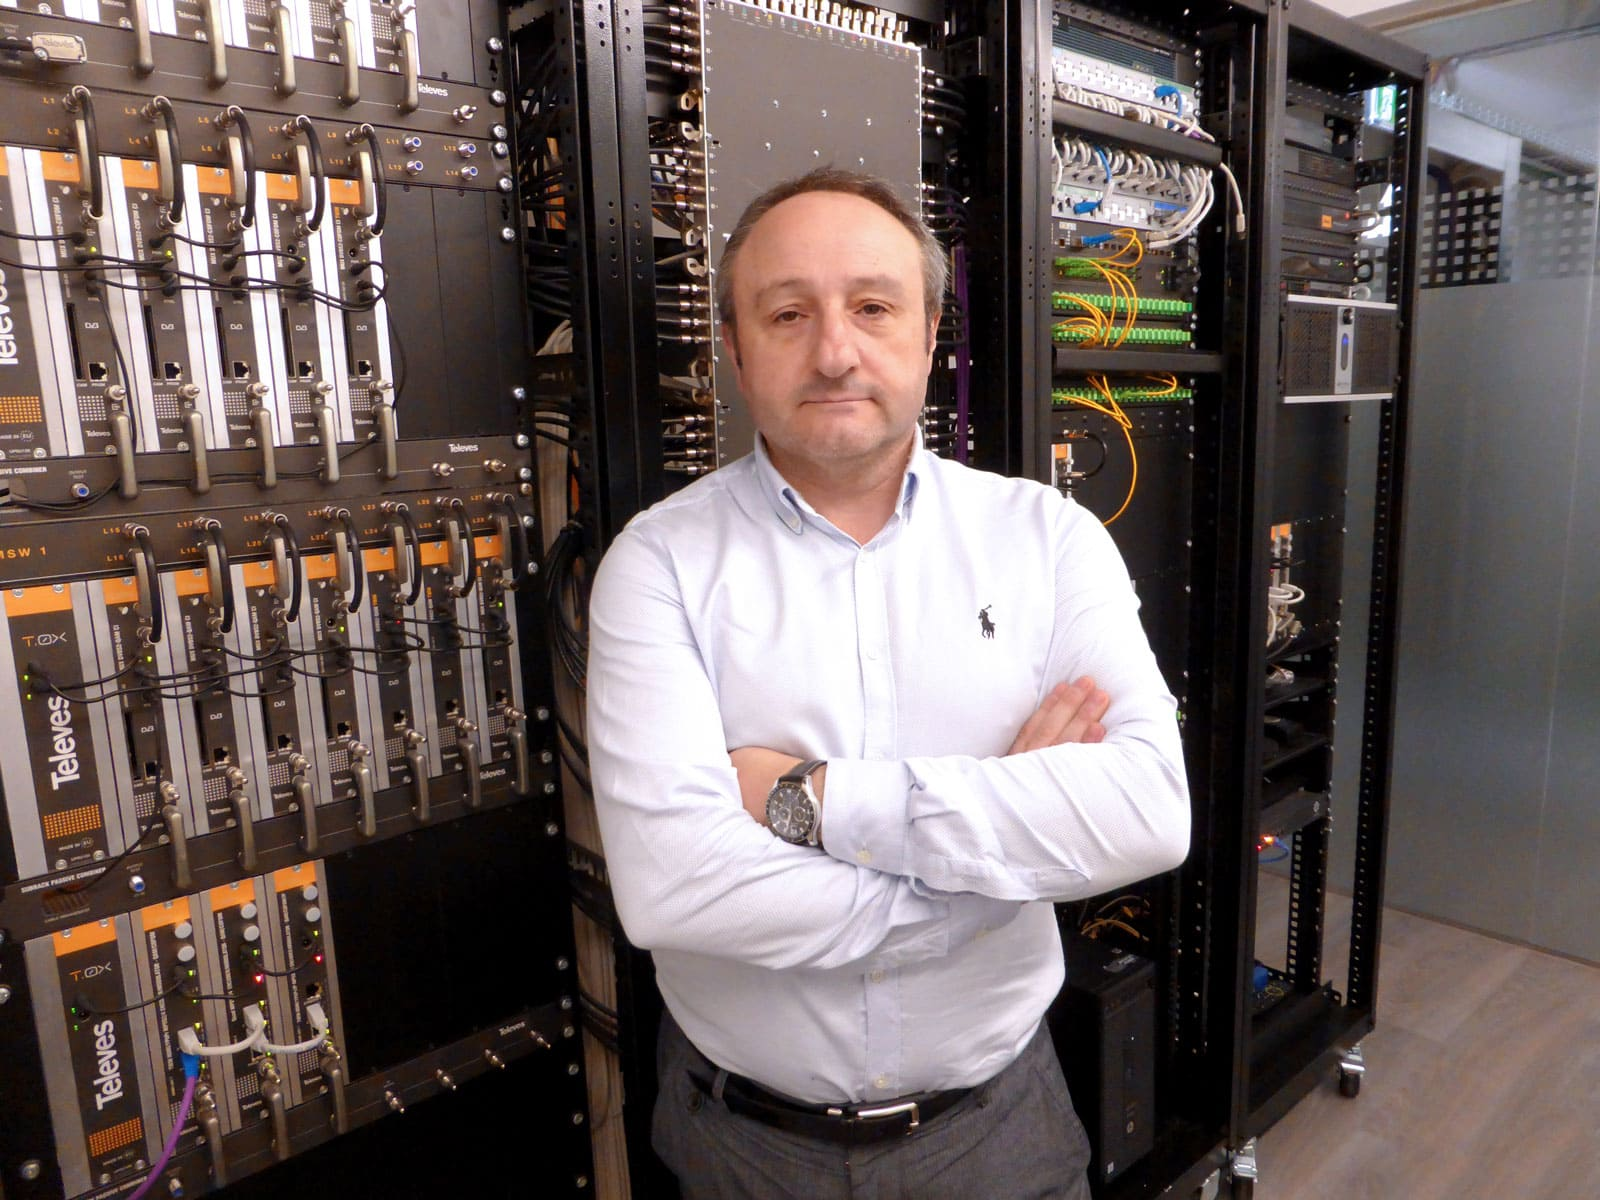 Javier Esteban, Technical Support Manager for GPON Networks